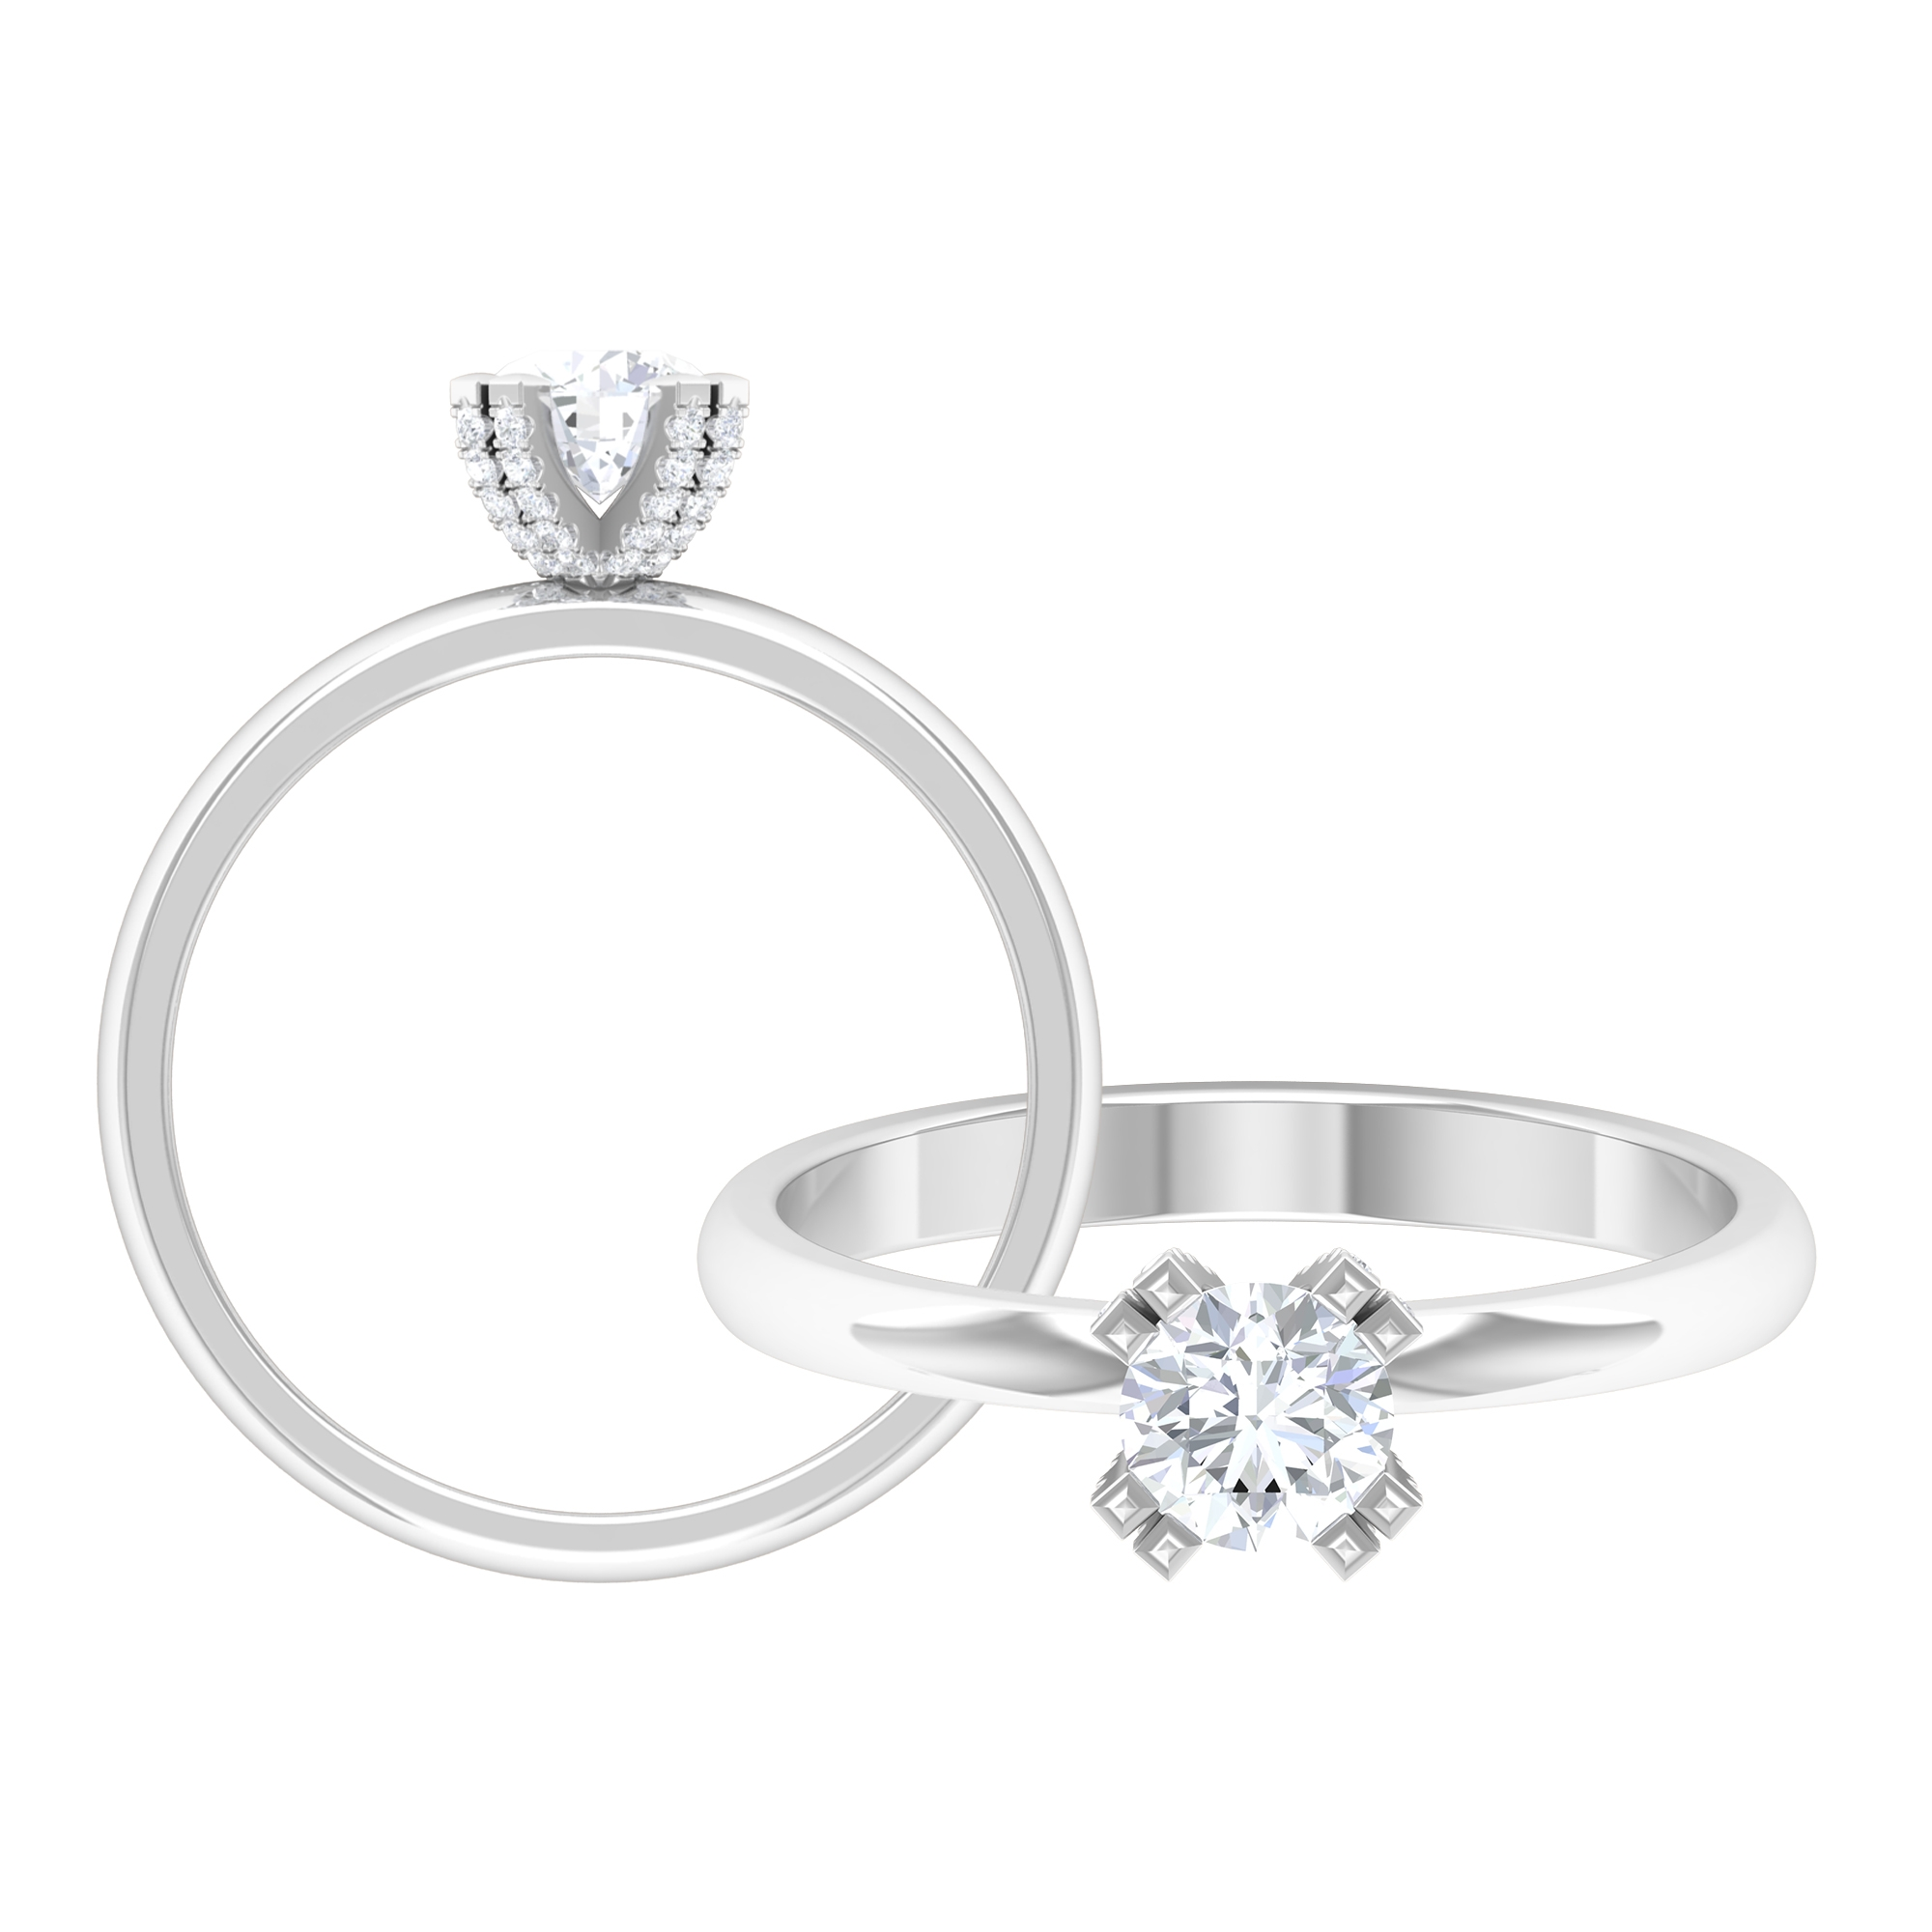 3/4 CT Diamond Solitaire Ring in Decorative Double Prong Setting